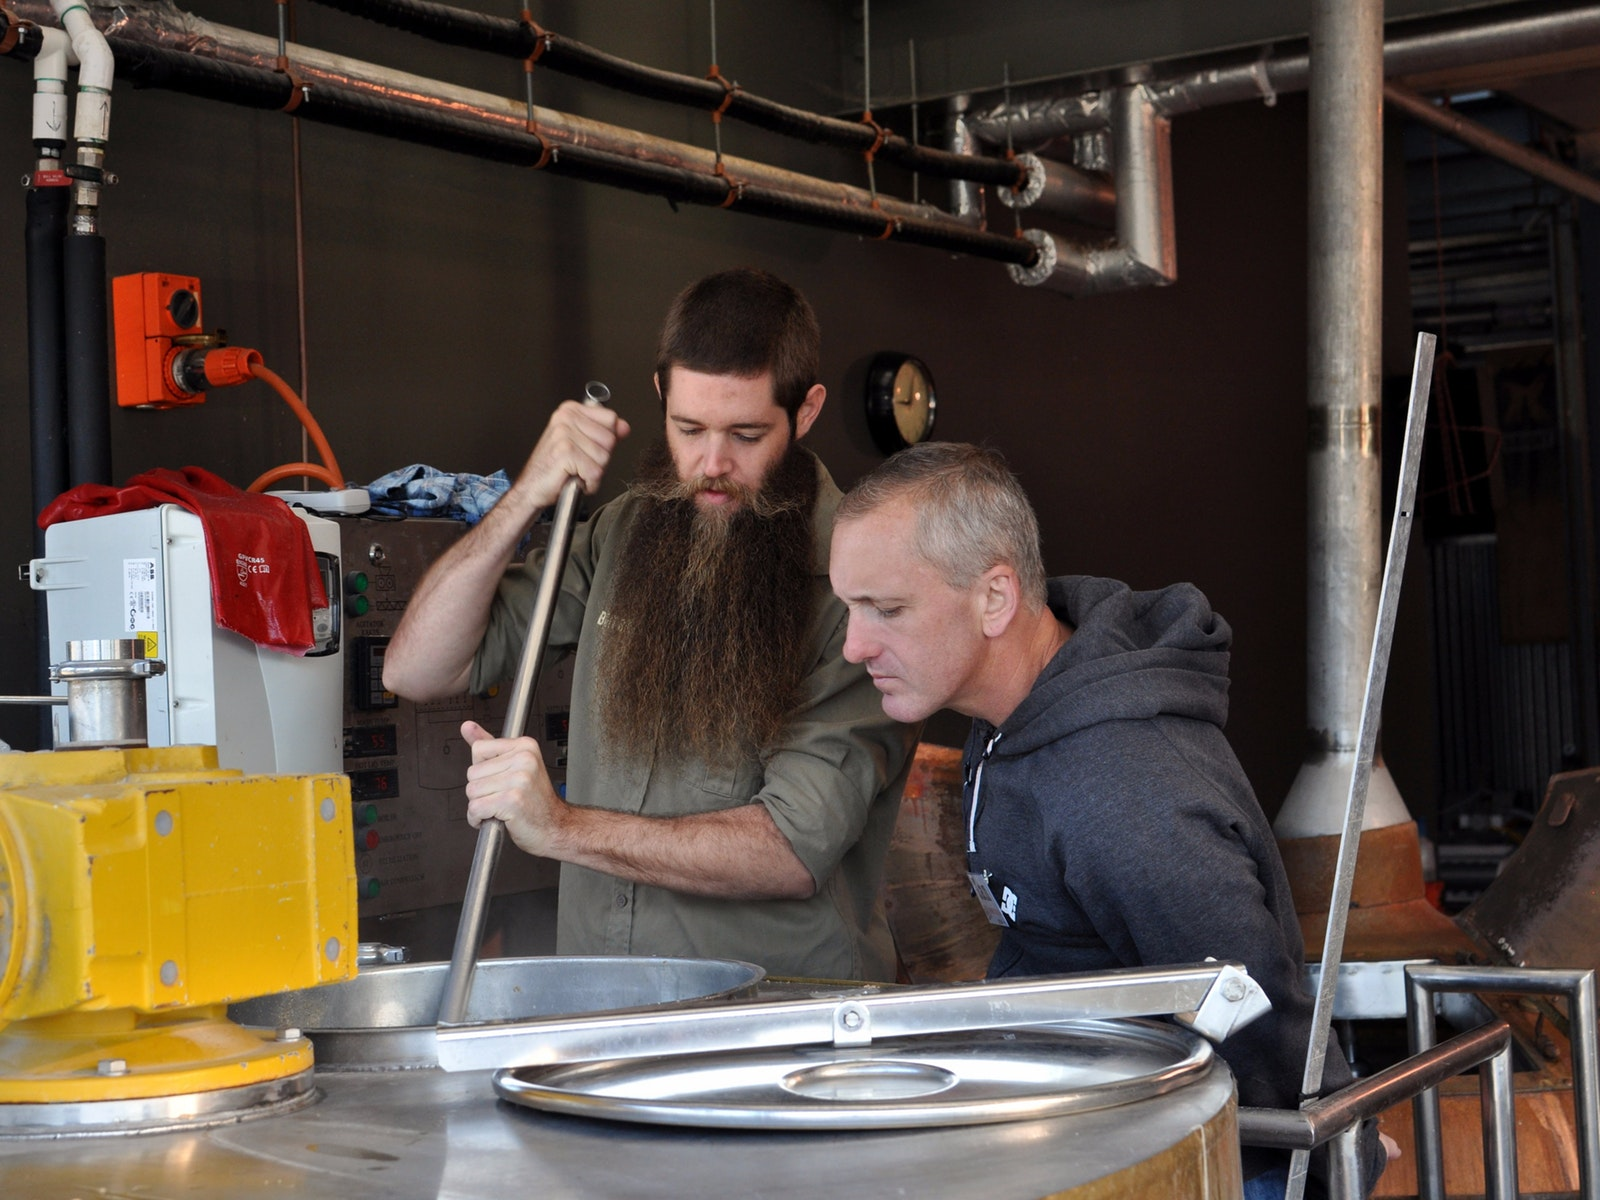 A brewer instructs a man in brewing